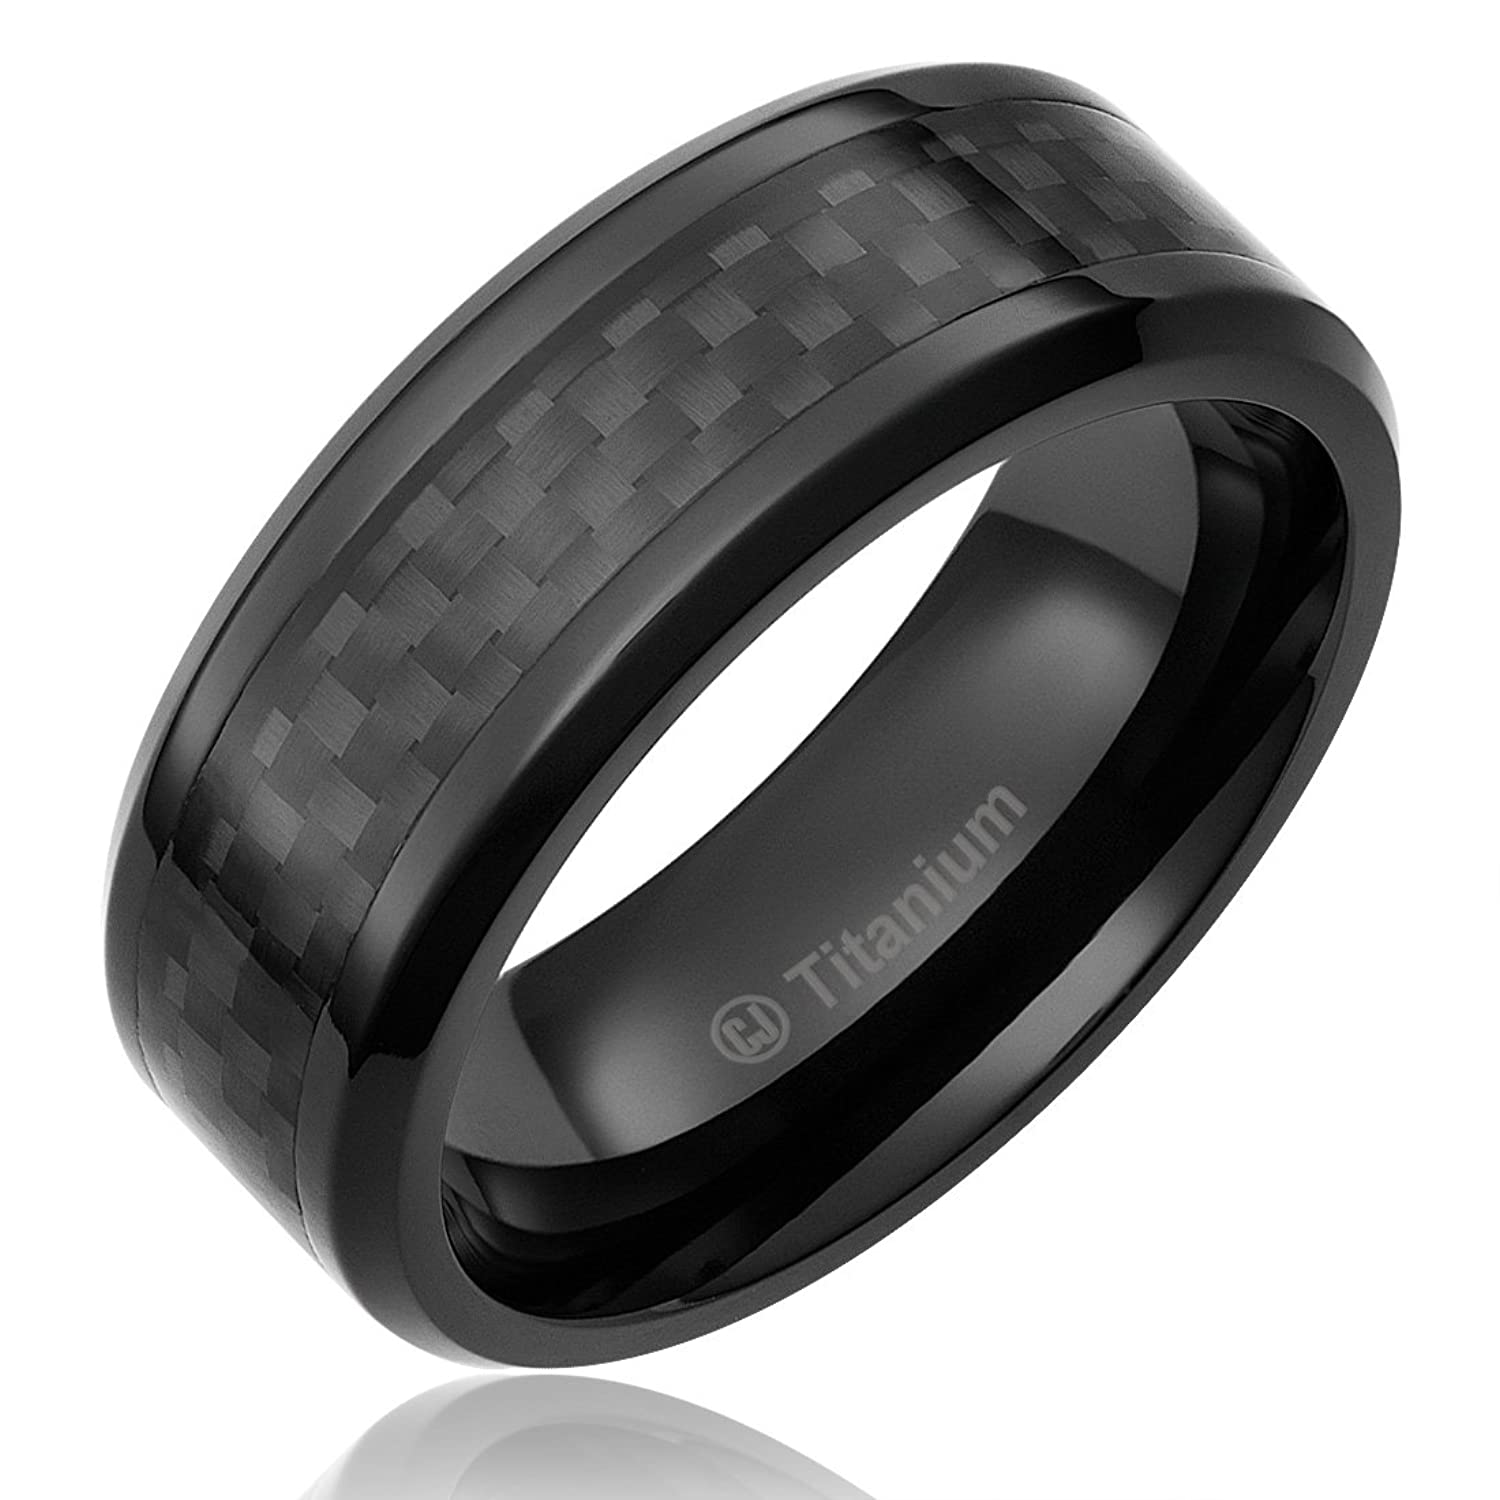 8MM Mens Titanium Ring Wedding Band Black Plated with Black Carbon